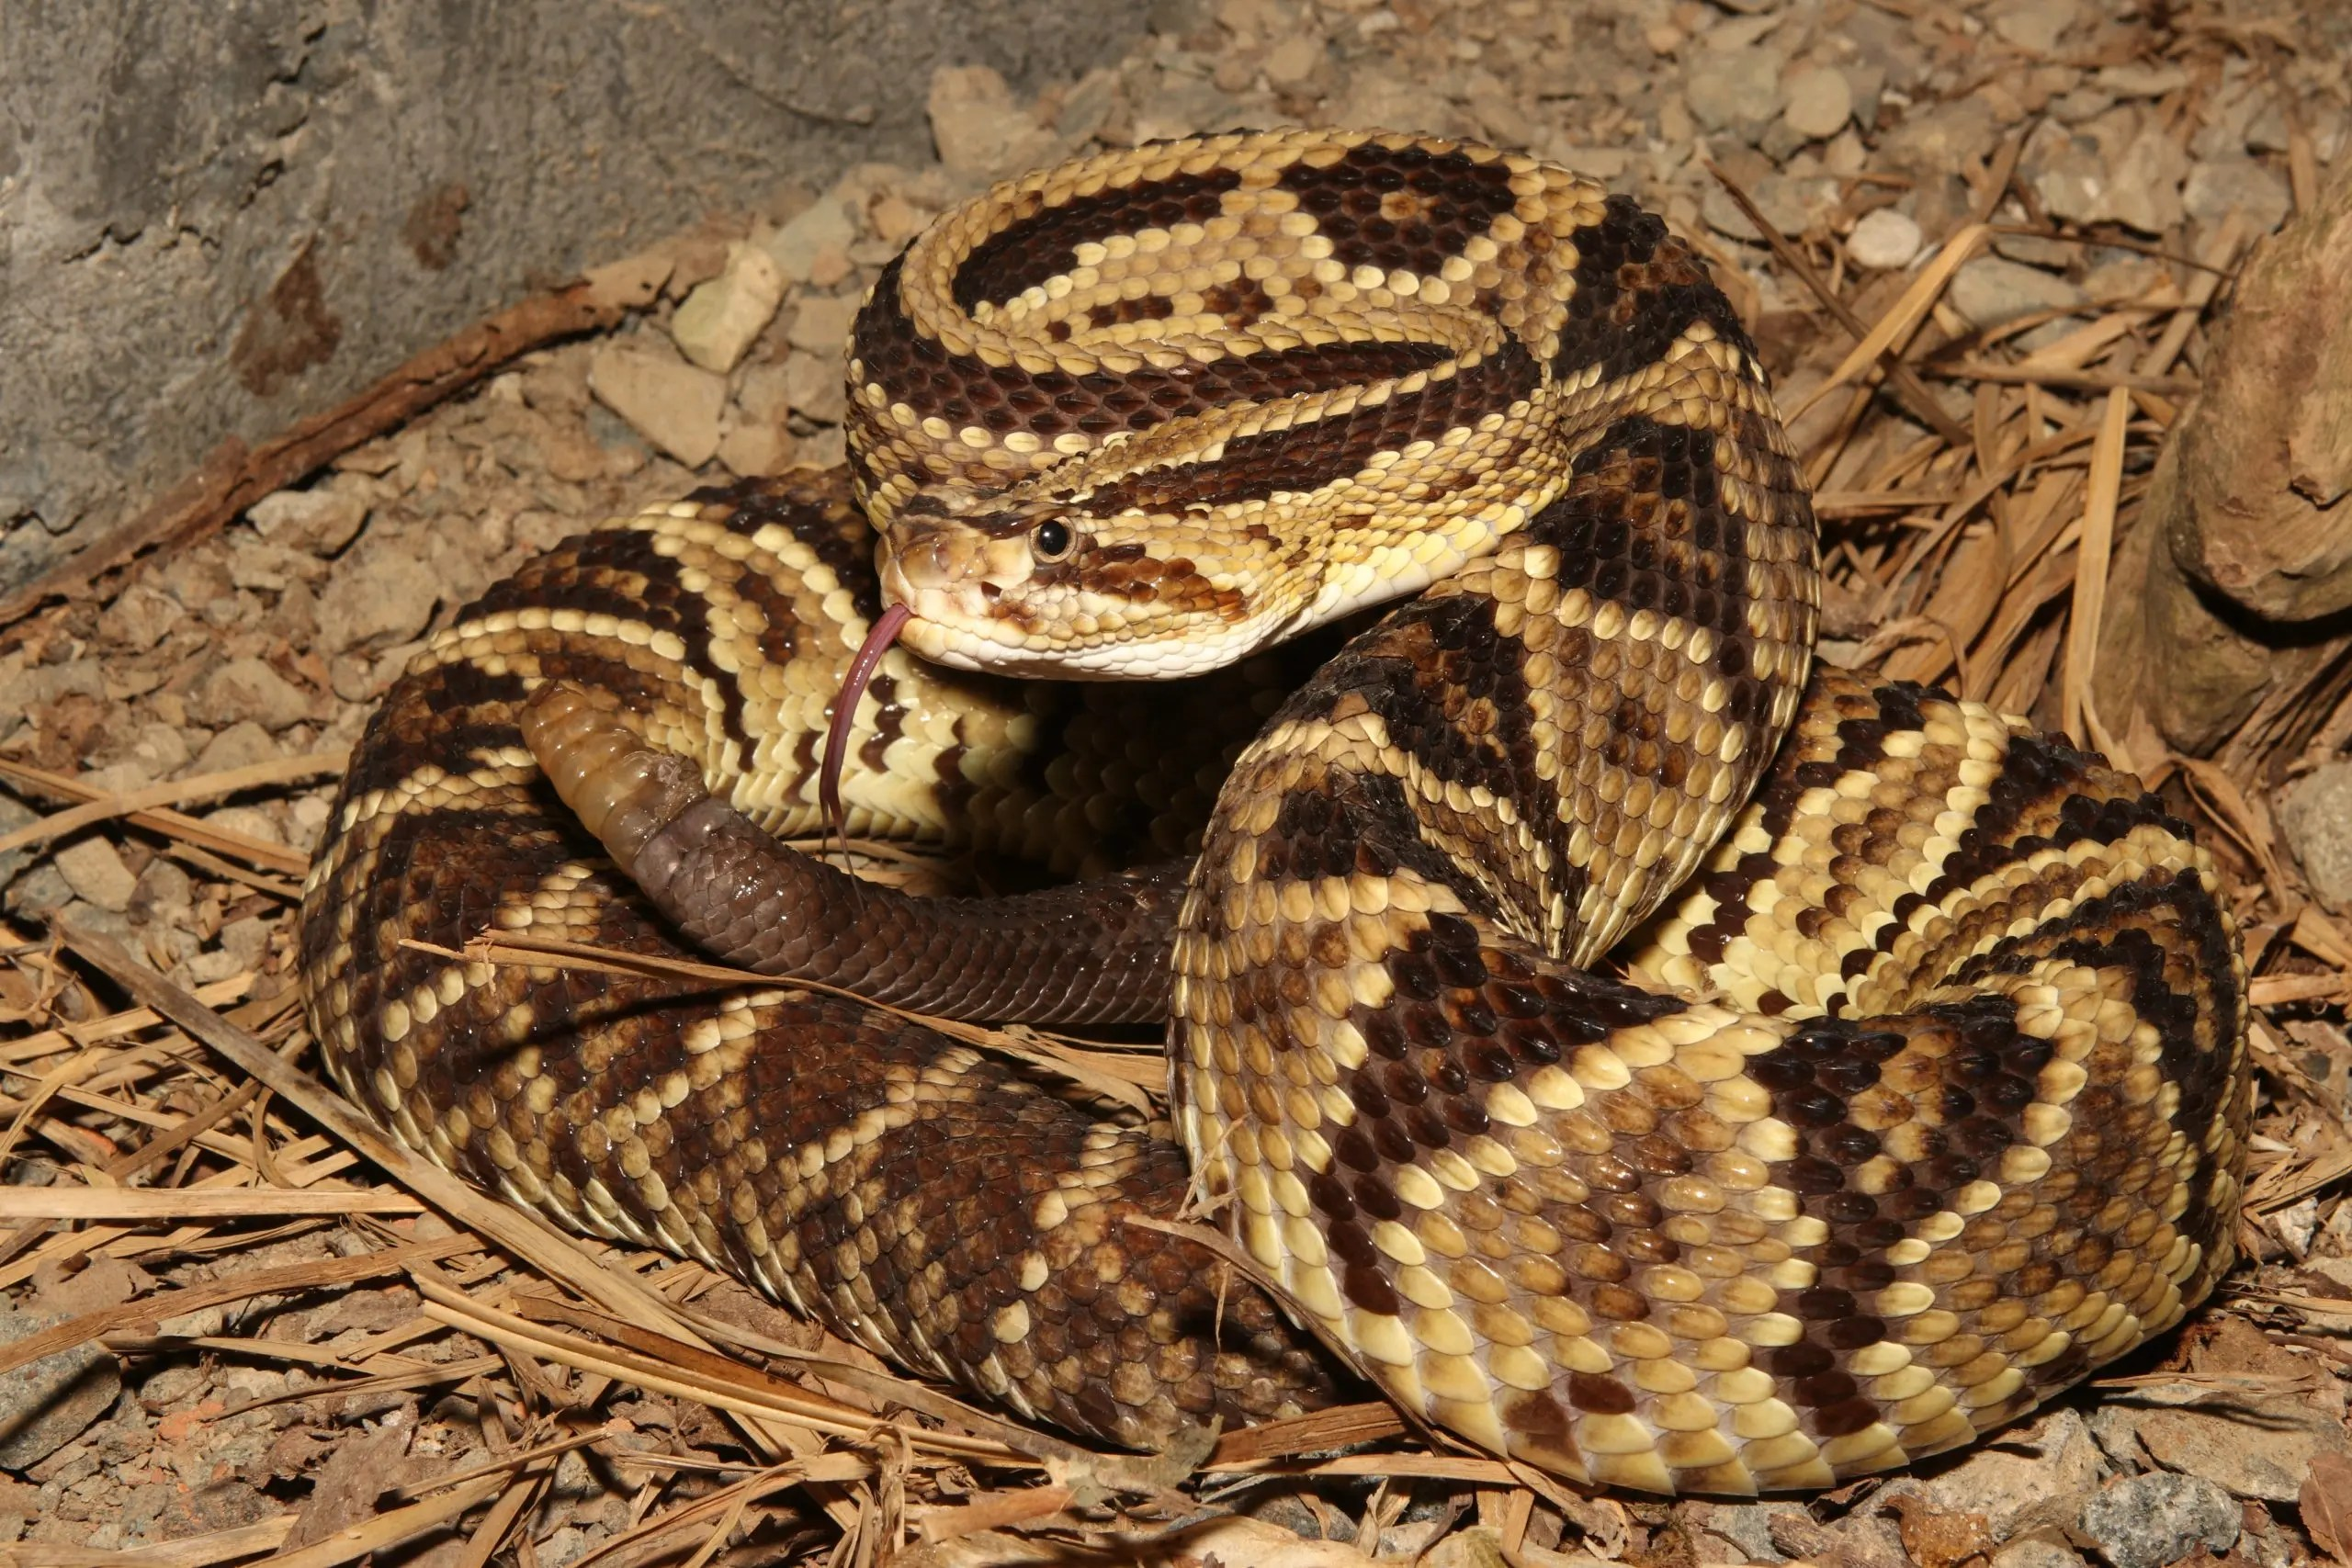 Jinglebells of the Snake World – the Neotropical Rattlesnakes